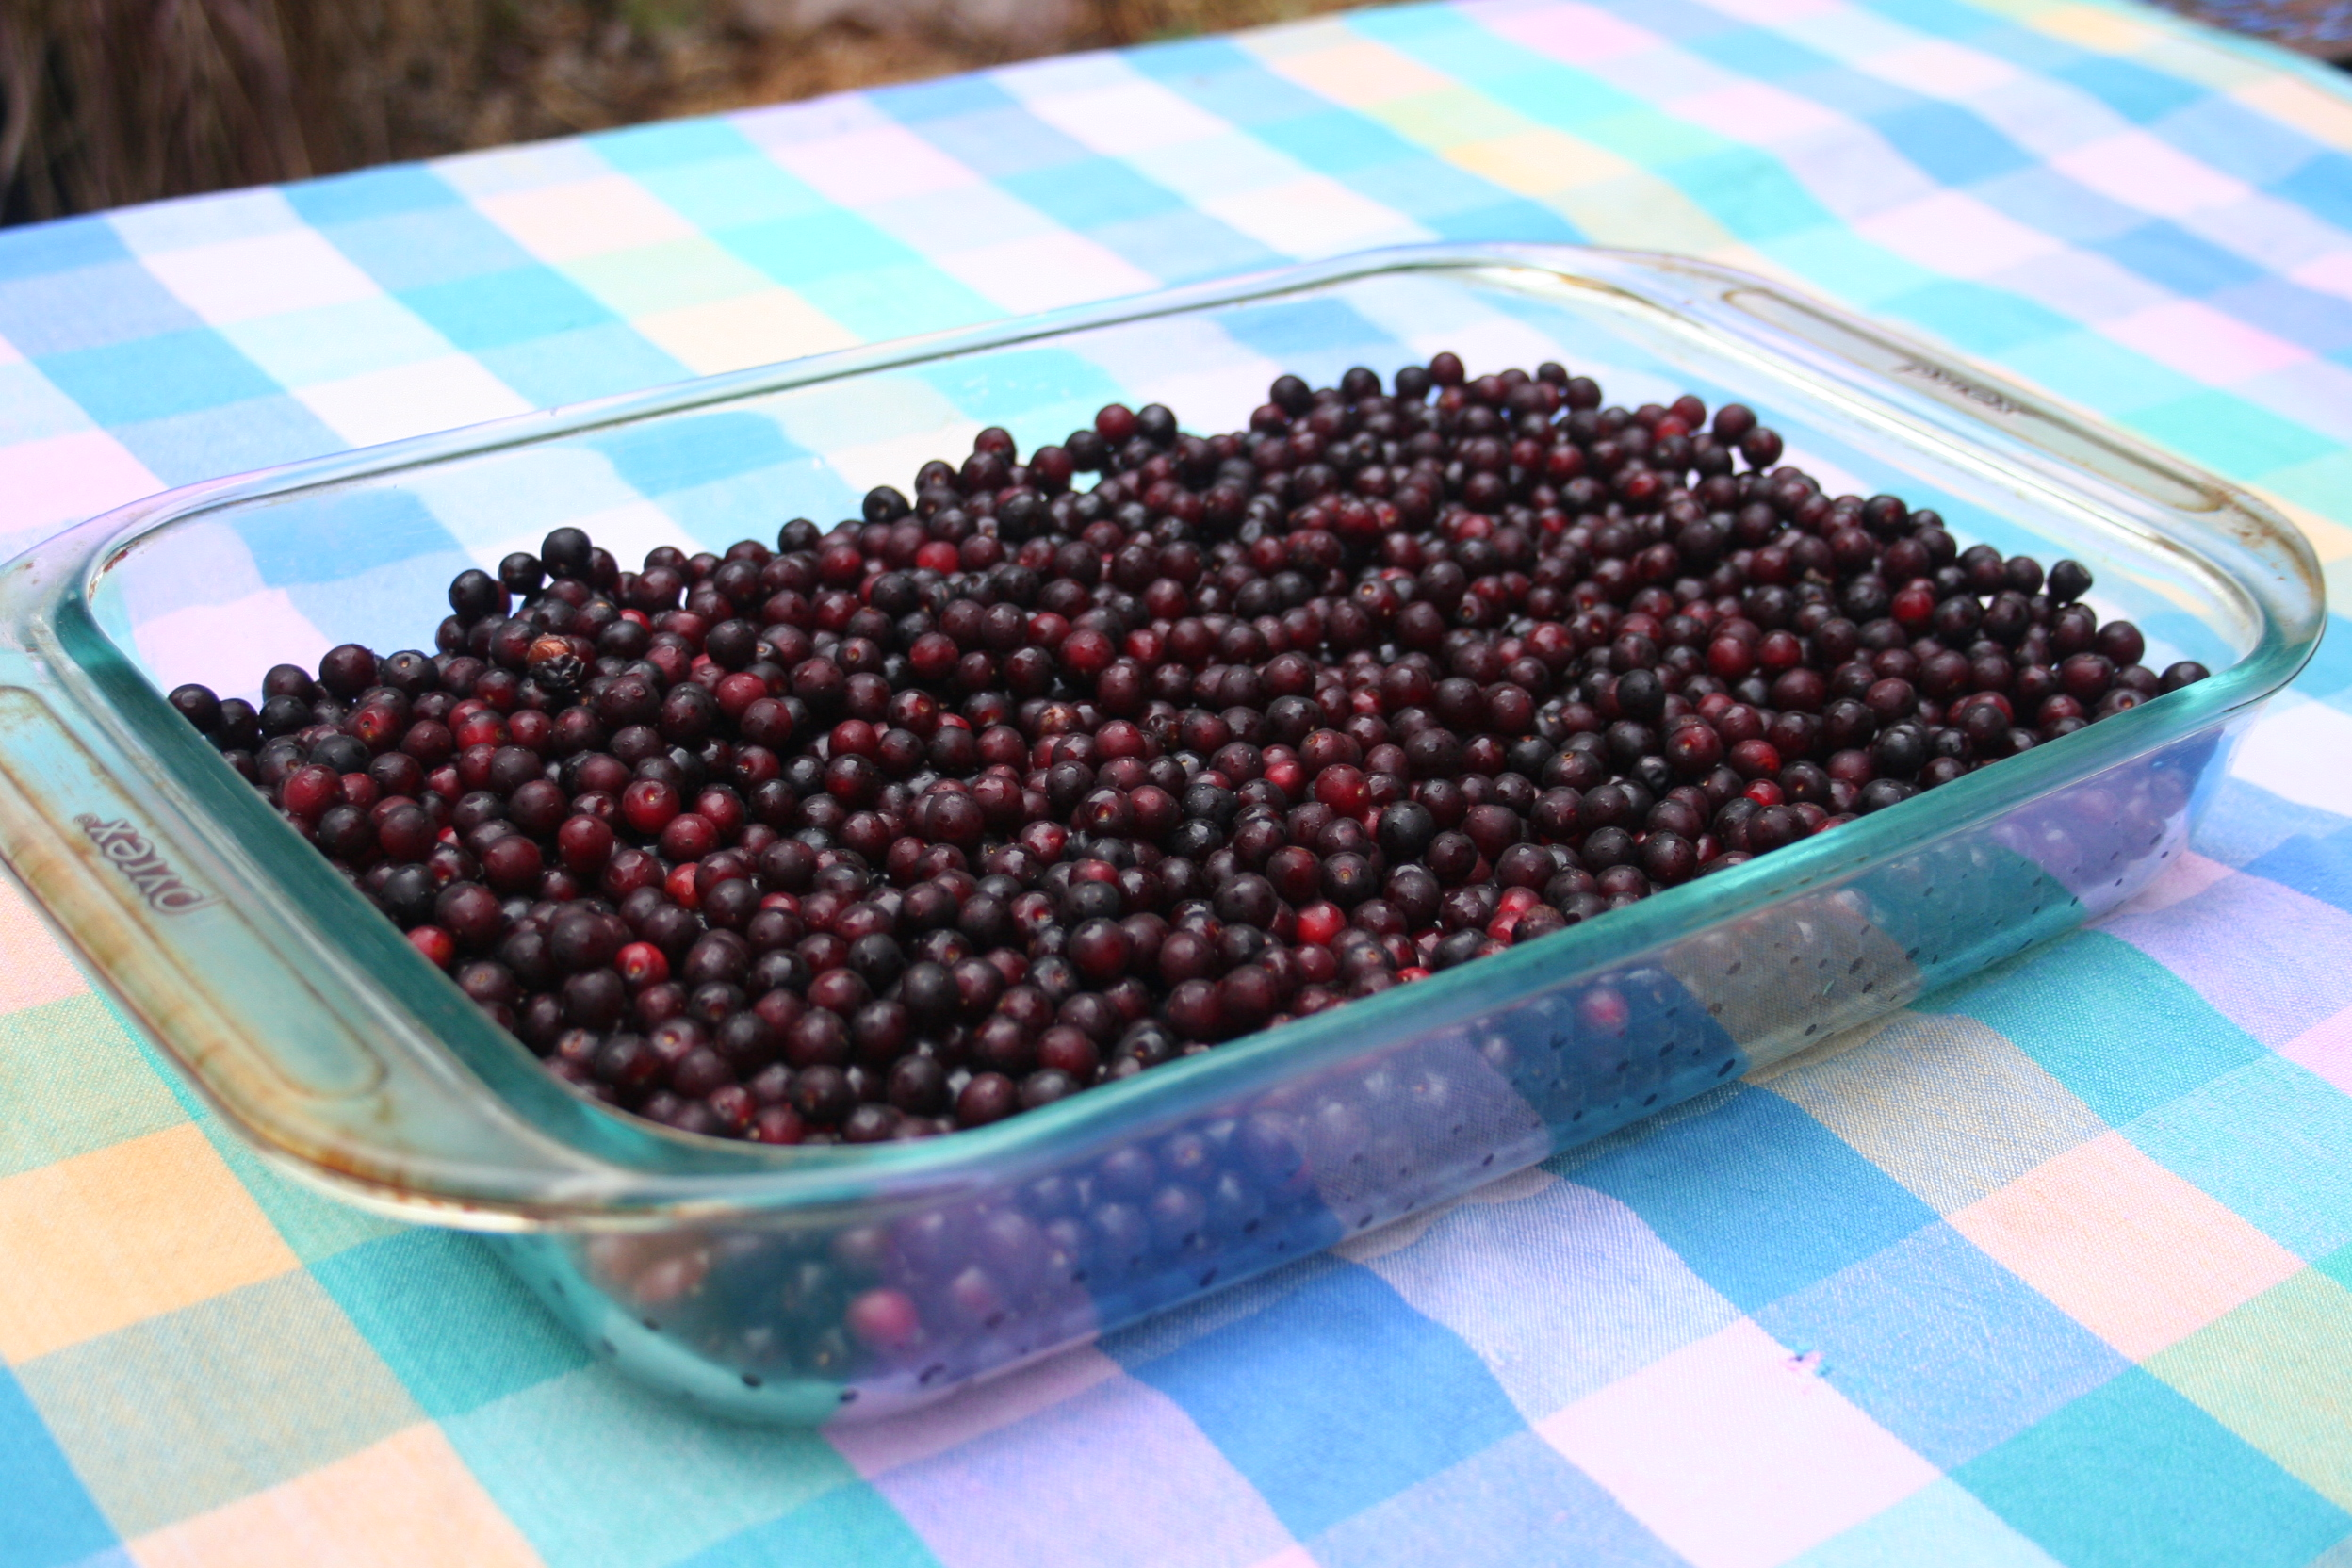 chokecherry's fruit in a casserole bowl